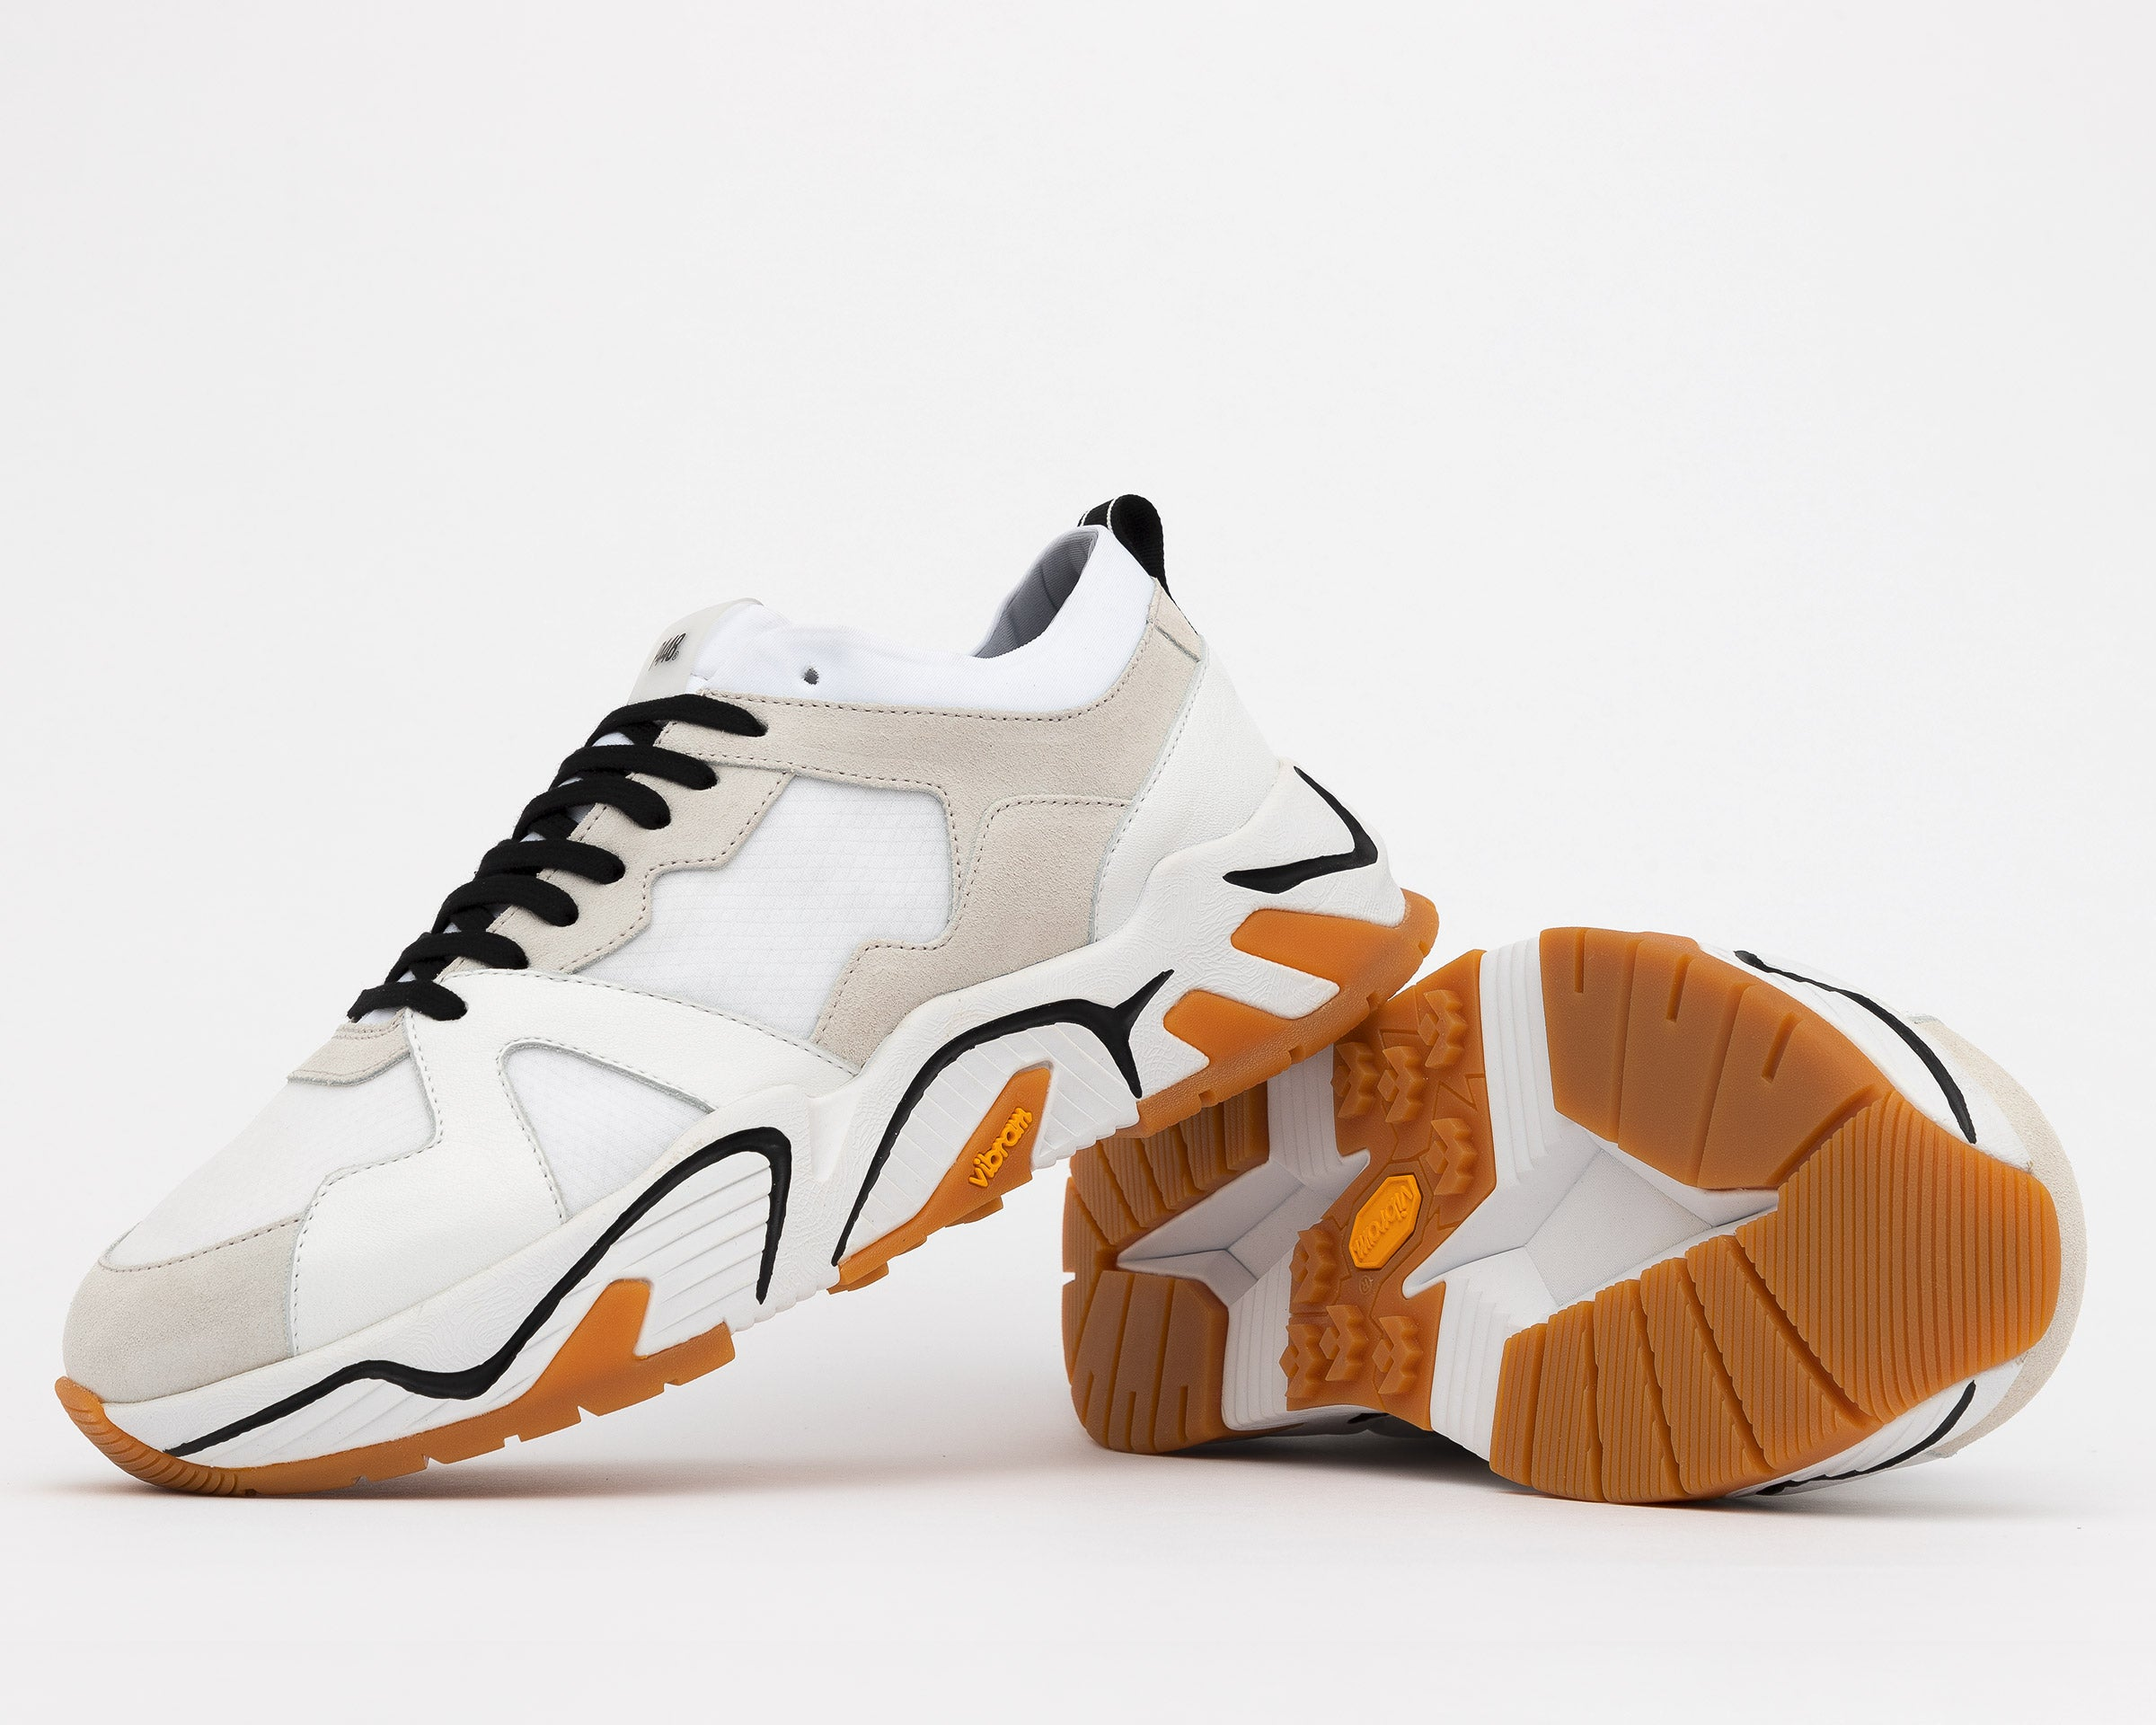 Dean Chunky Sneaker in Cun/White - Styled